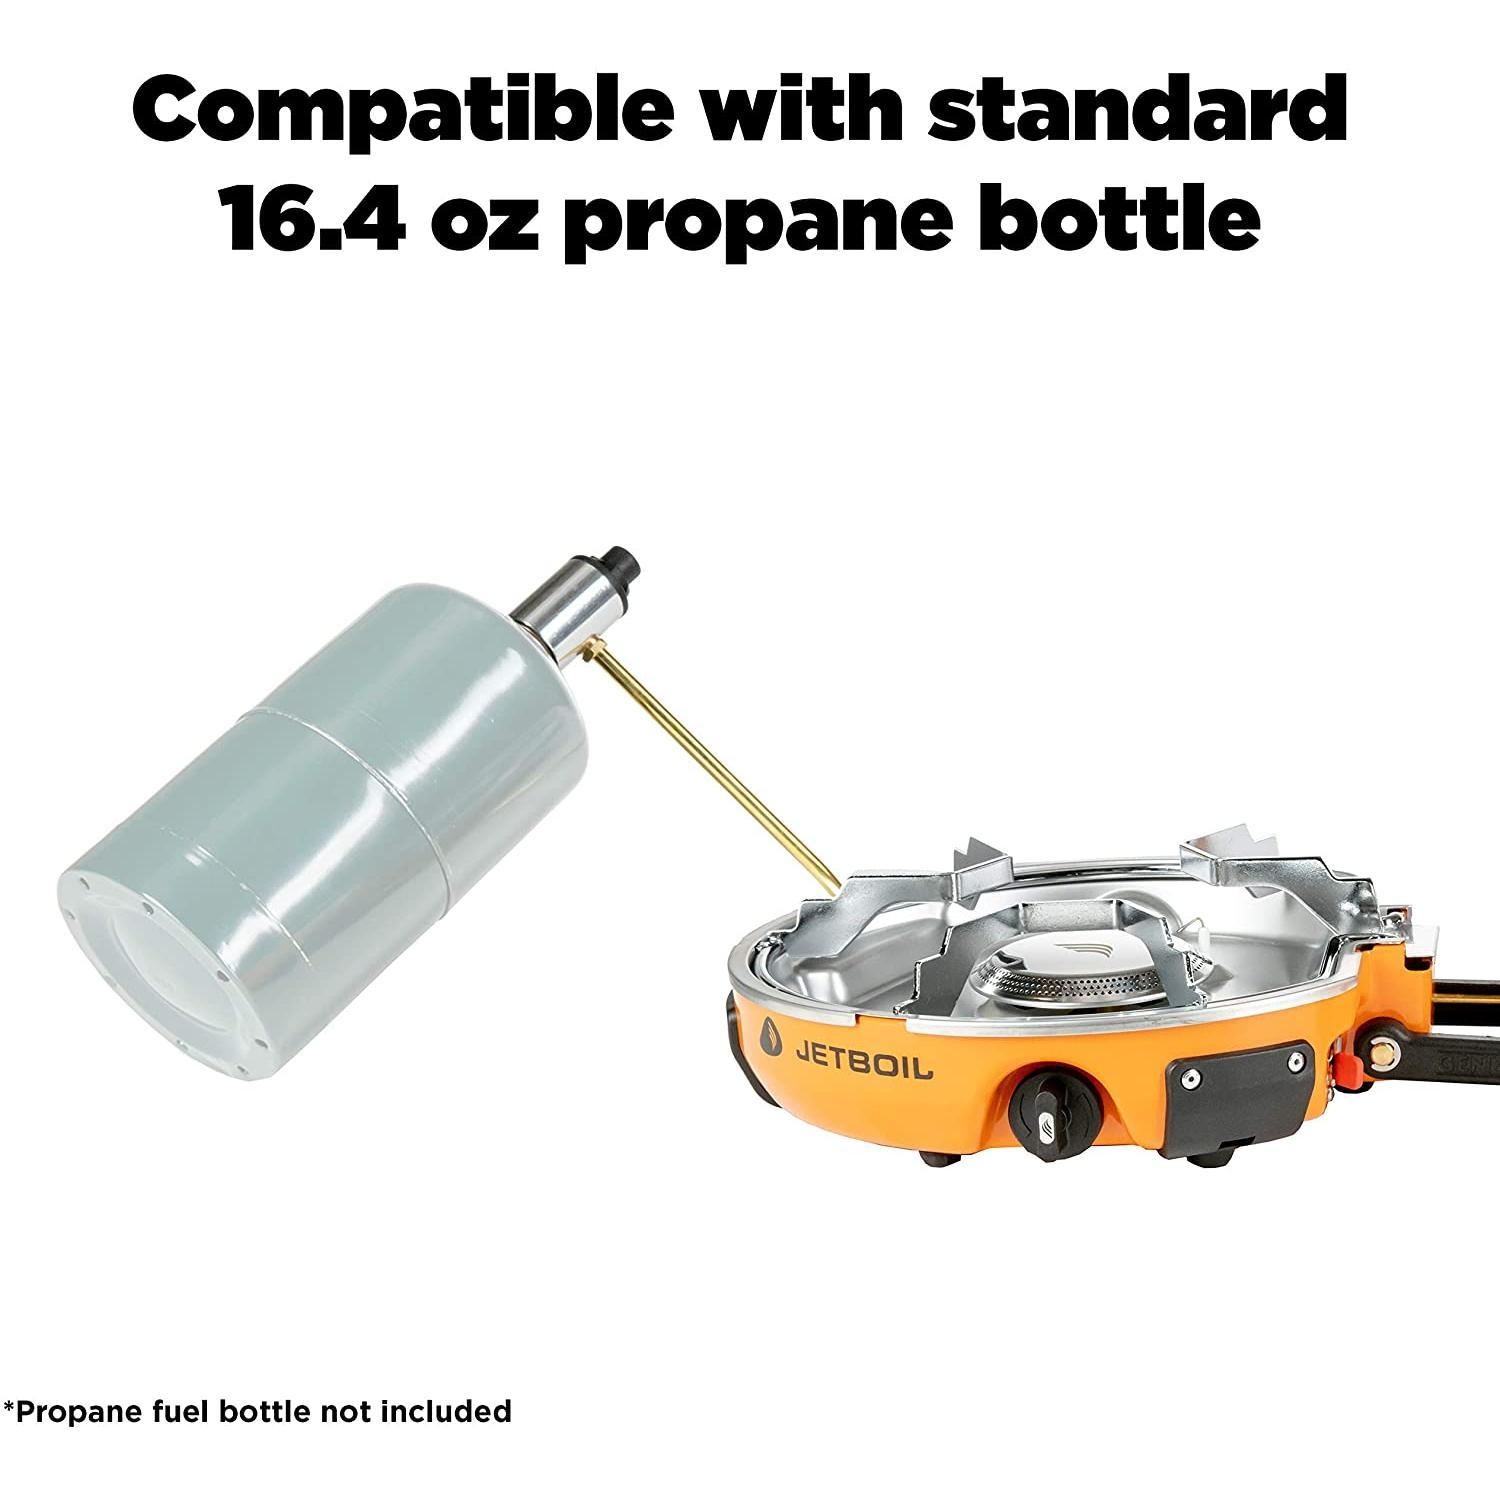 Jetboil Genesis Basecamp Backpacking and Camping Stove Cooking System with Camping Cookware